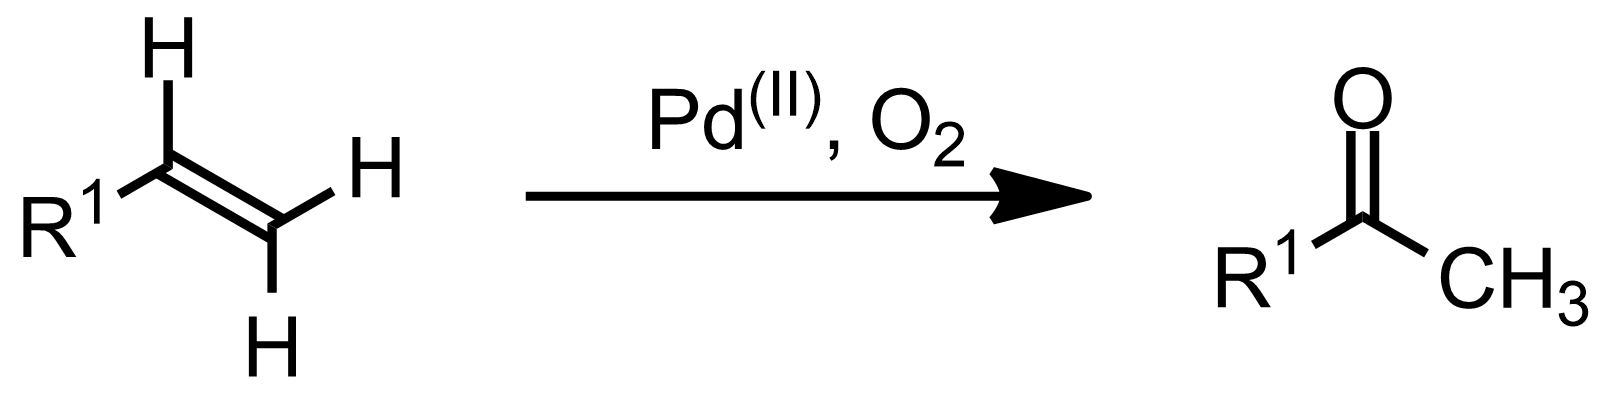 Schematic representation of the Wacker Oxidation.